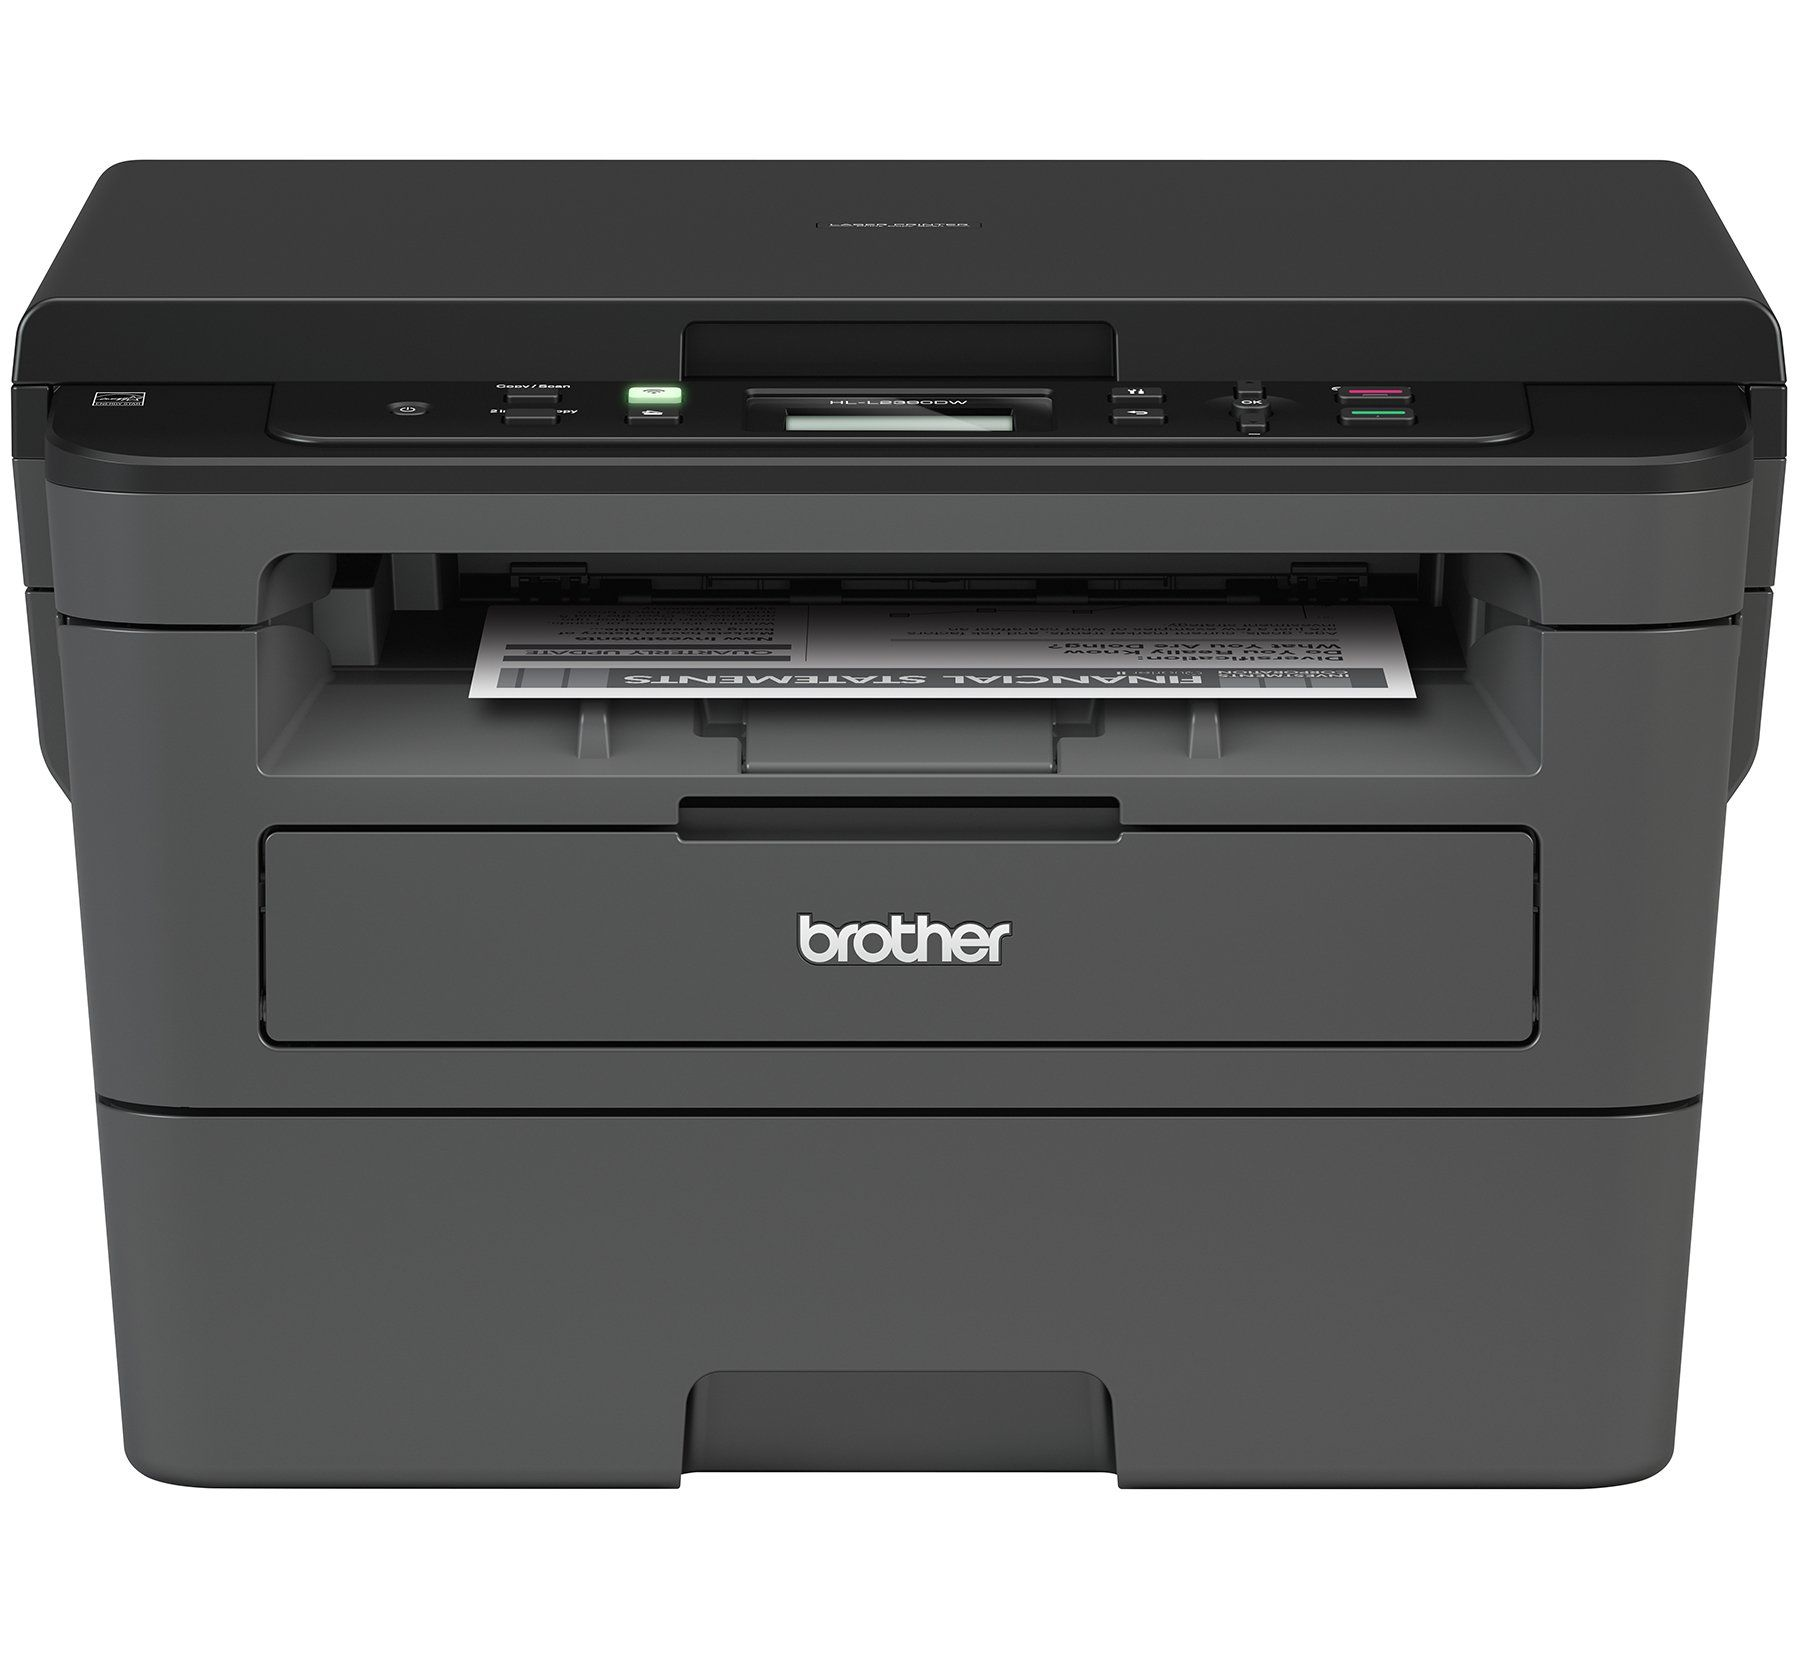 Brother Compact Monochrome Laser Printer Hll2390dw Convenient Flatbed Copy And Scan Wireless Printing Duplex Twosided Print Laser Printer Printer Best Printers